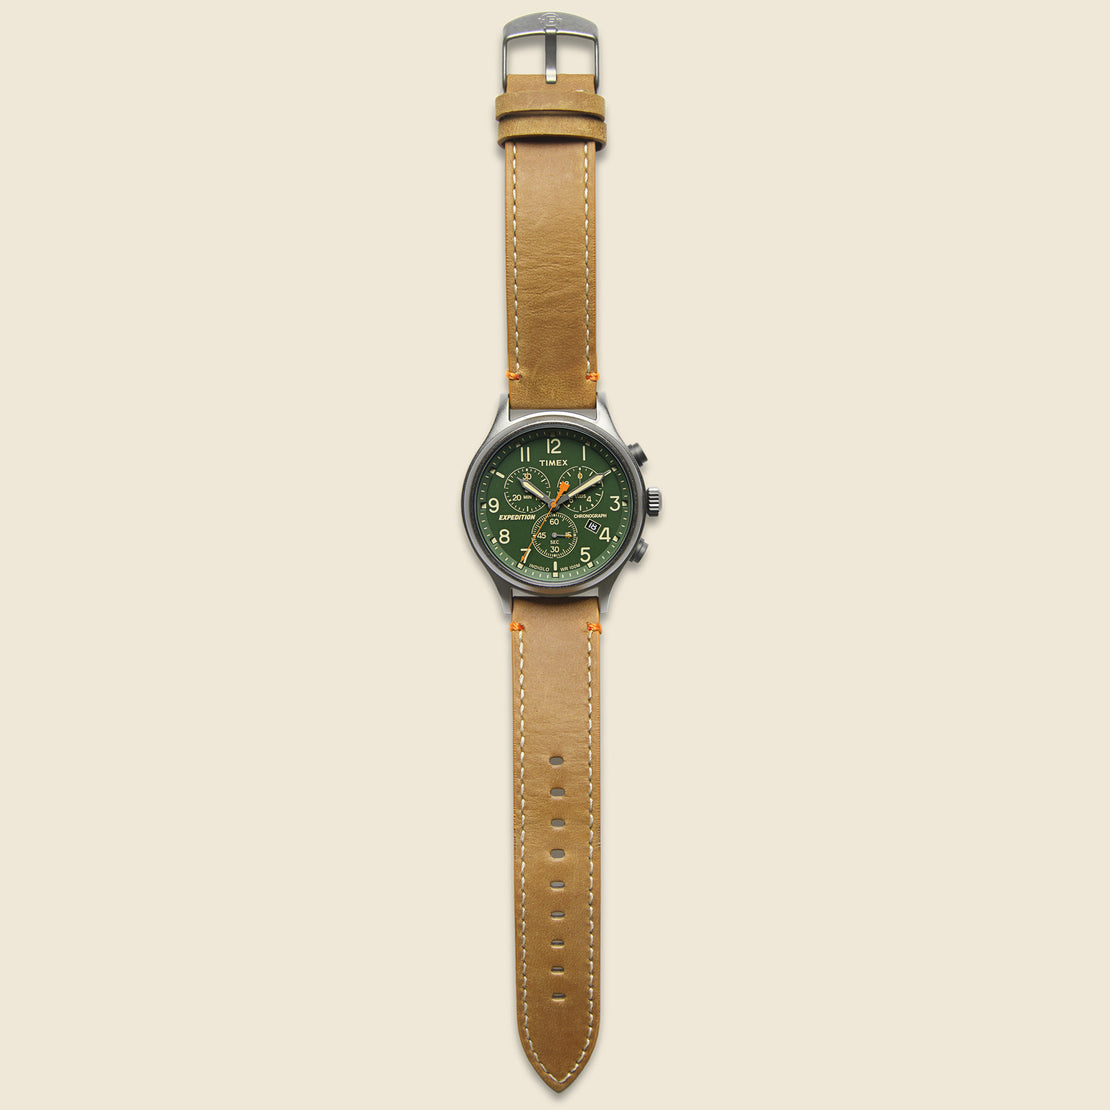 Expedition Scout Chronograph Watch 43mm - Green/Tan